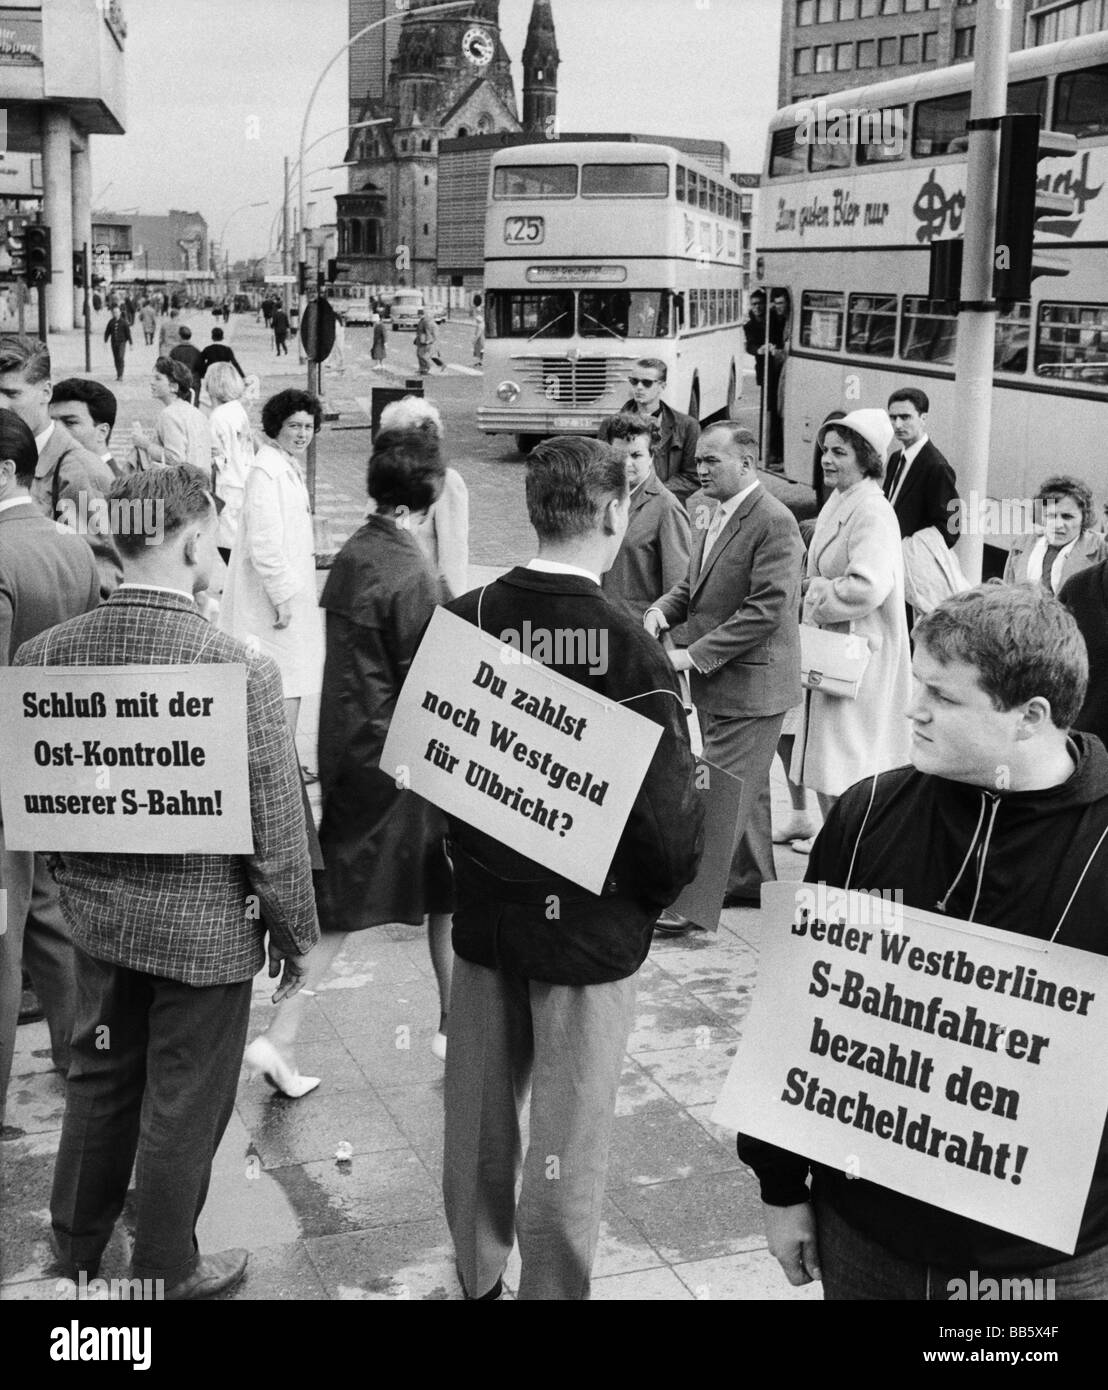 geography / travel, Germany, Berlin, politics, demonstration, boycott of the S-Bahn unter East German administration, Stock Photo